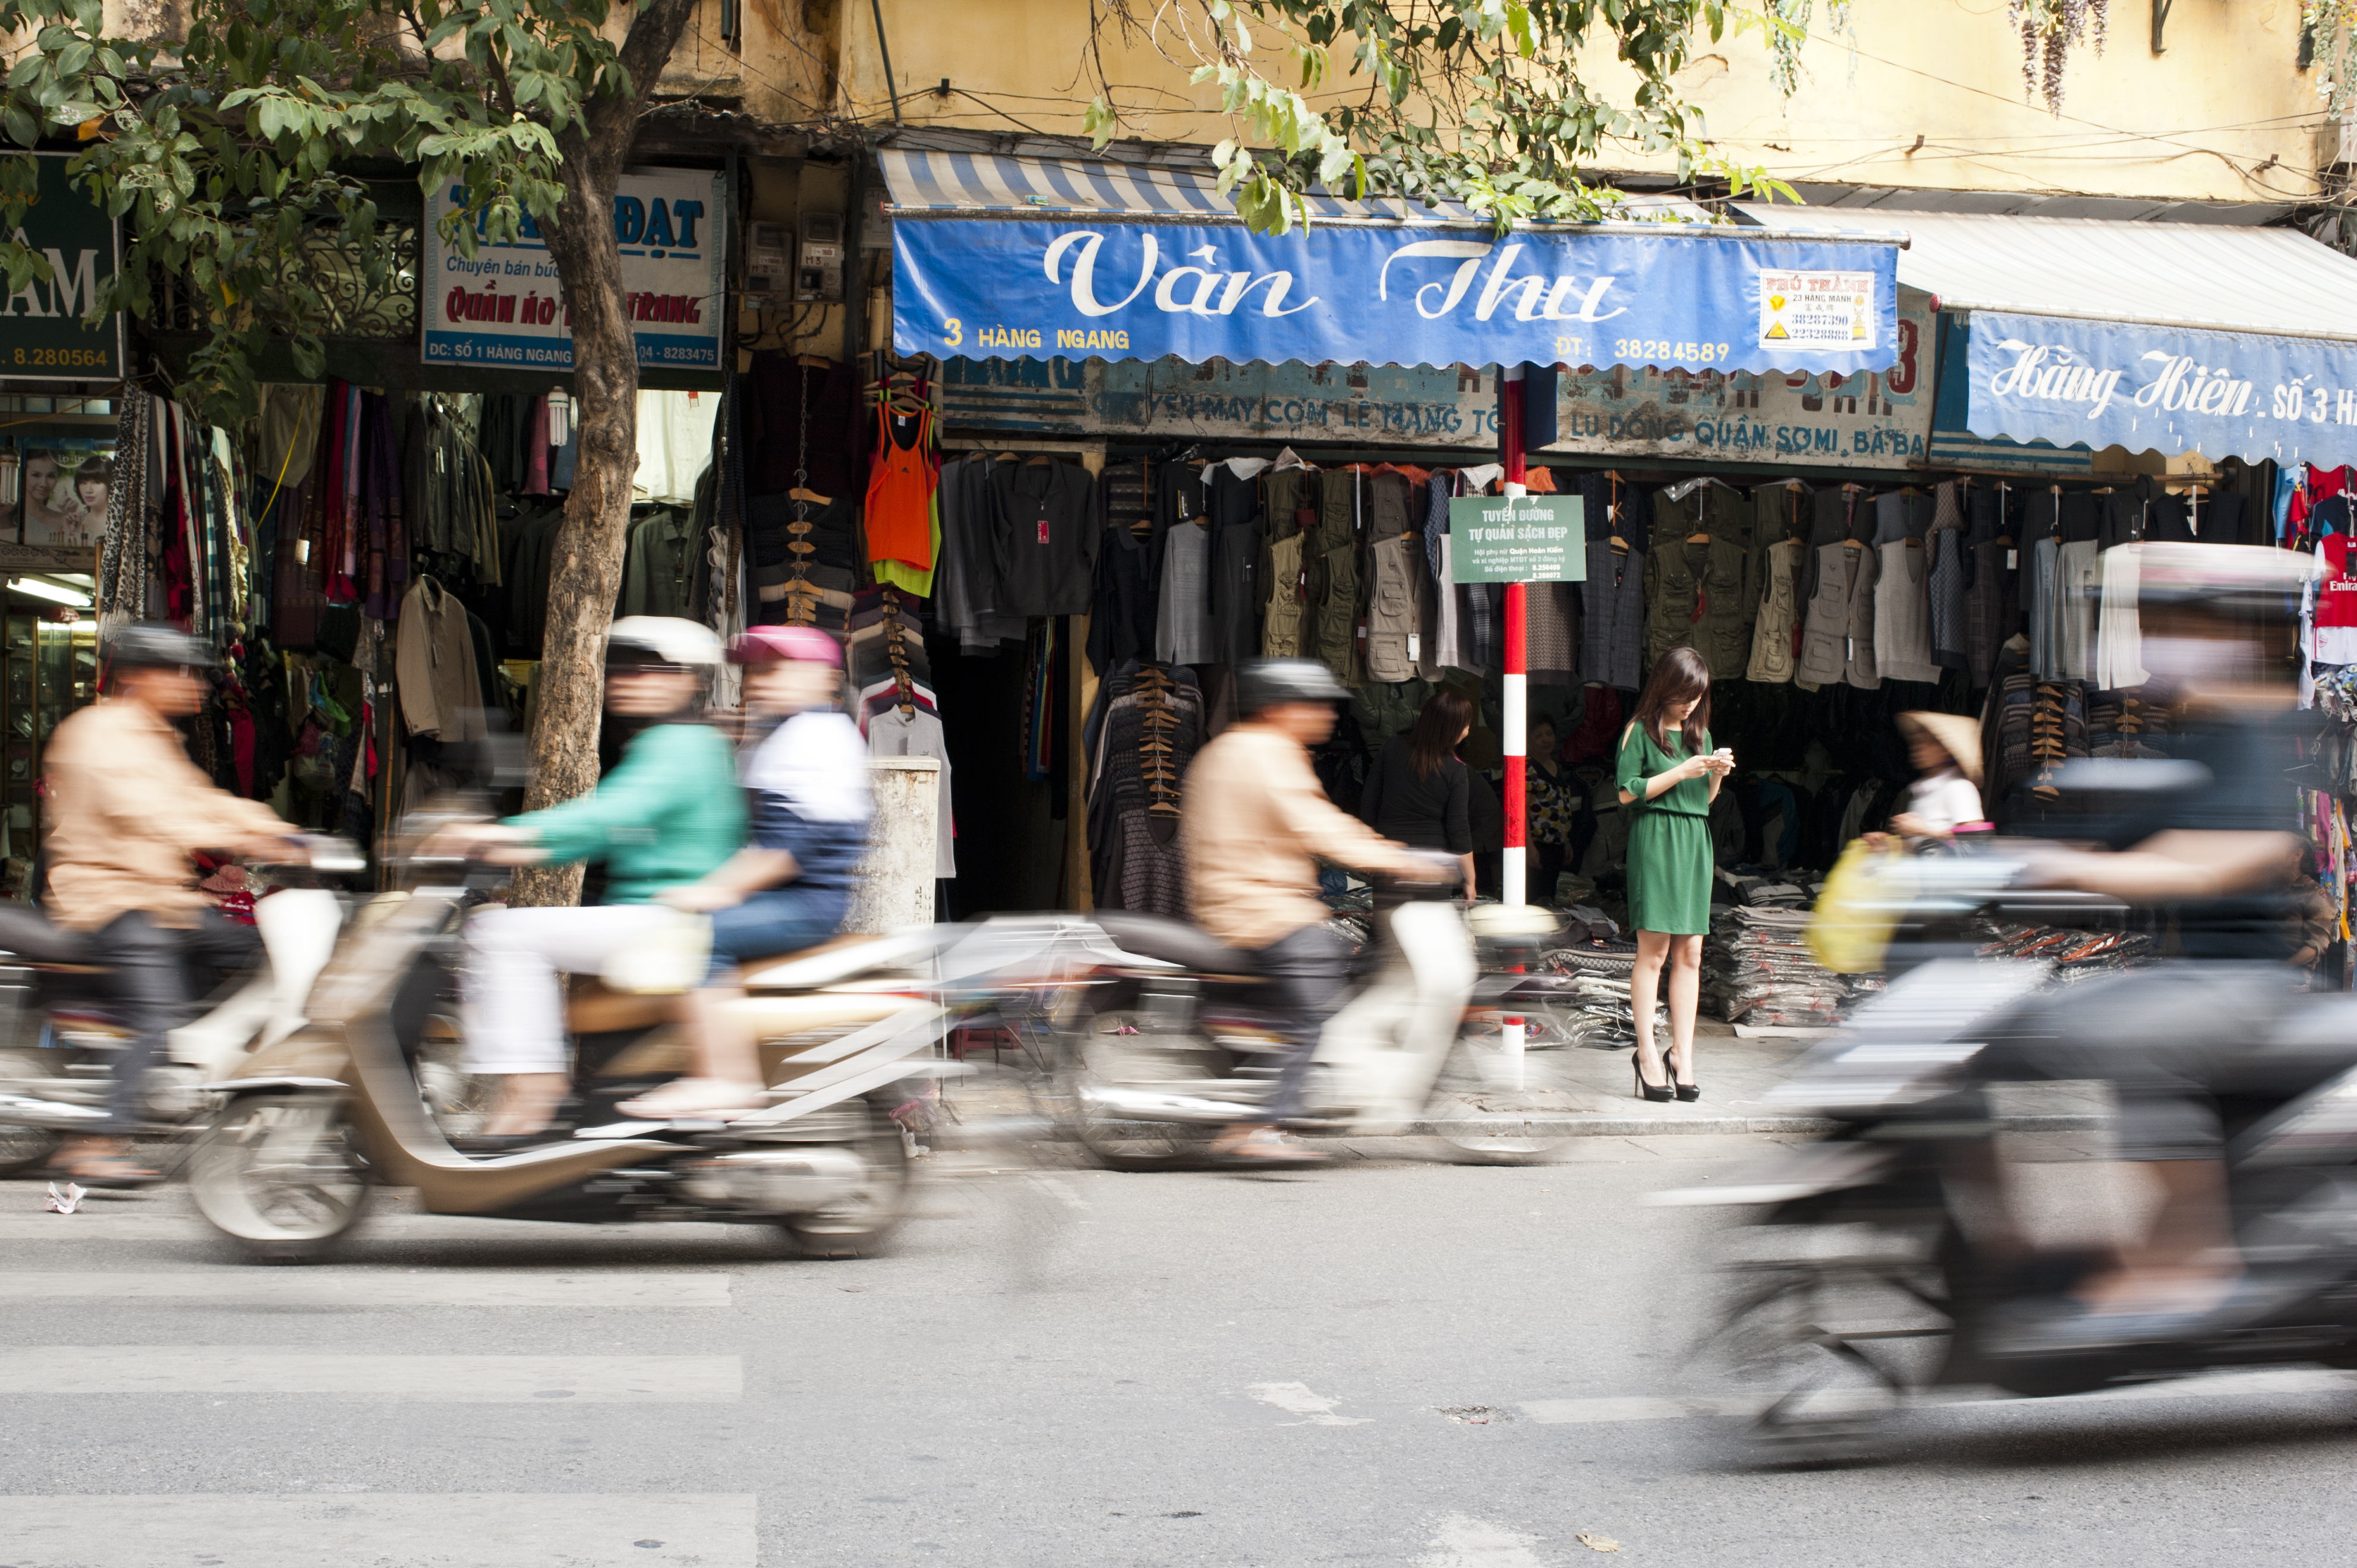 Distracted in Hanoi